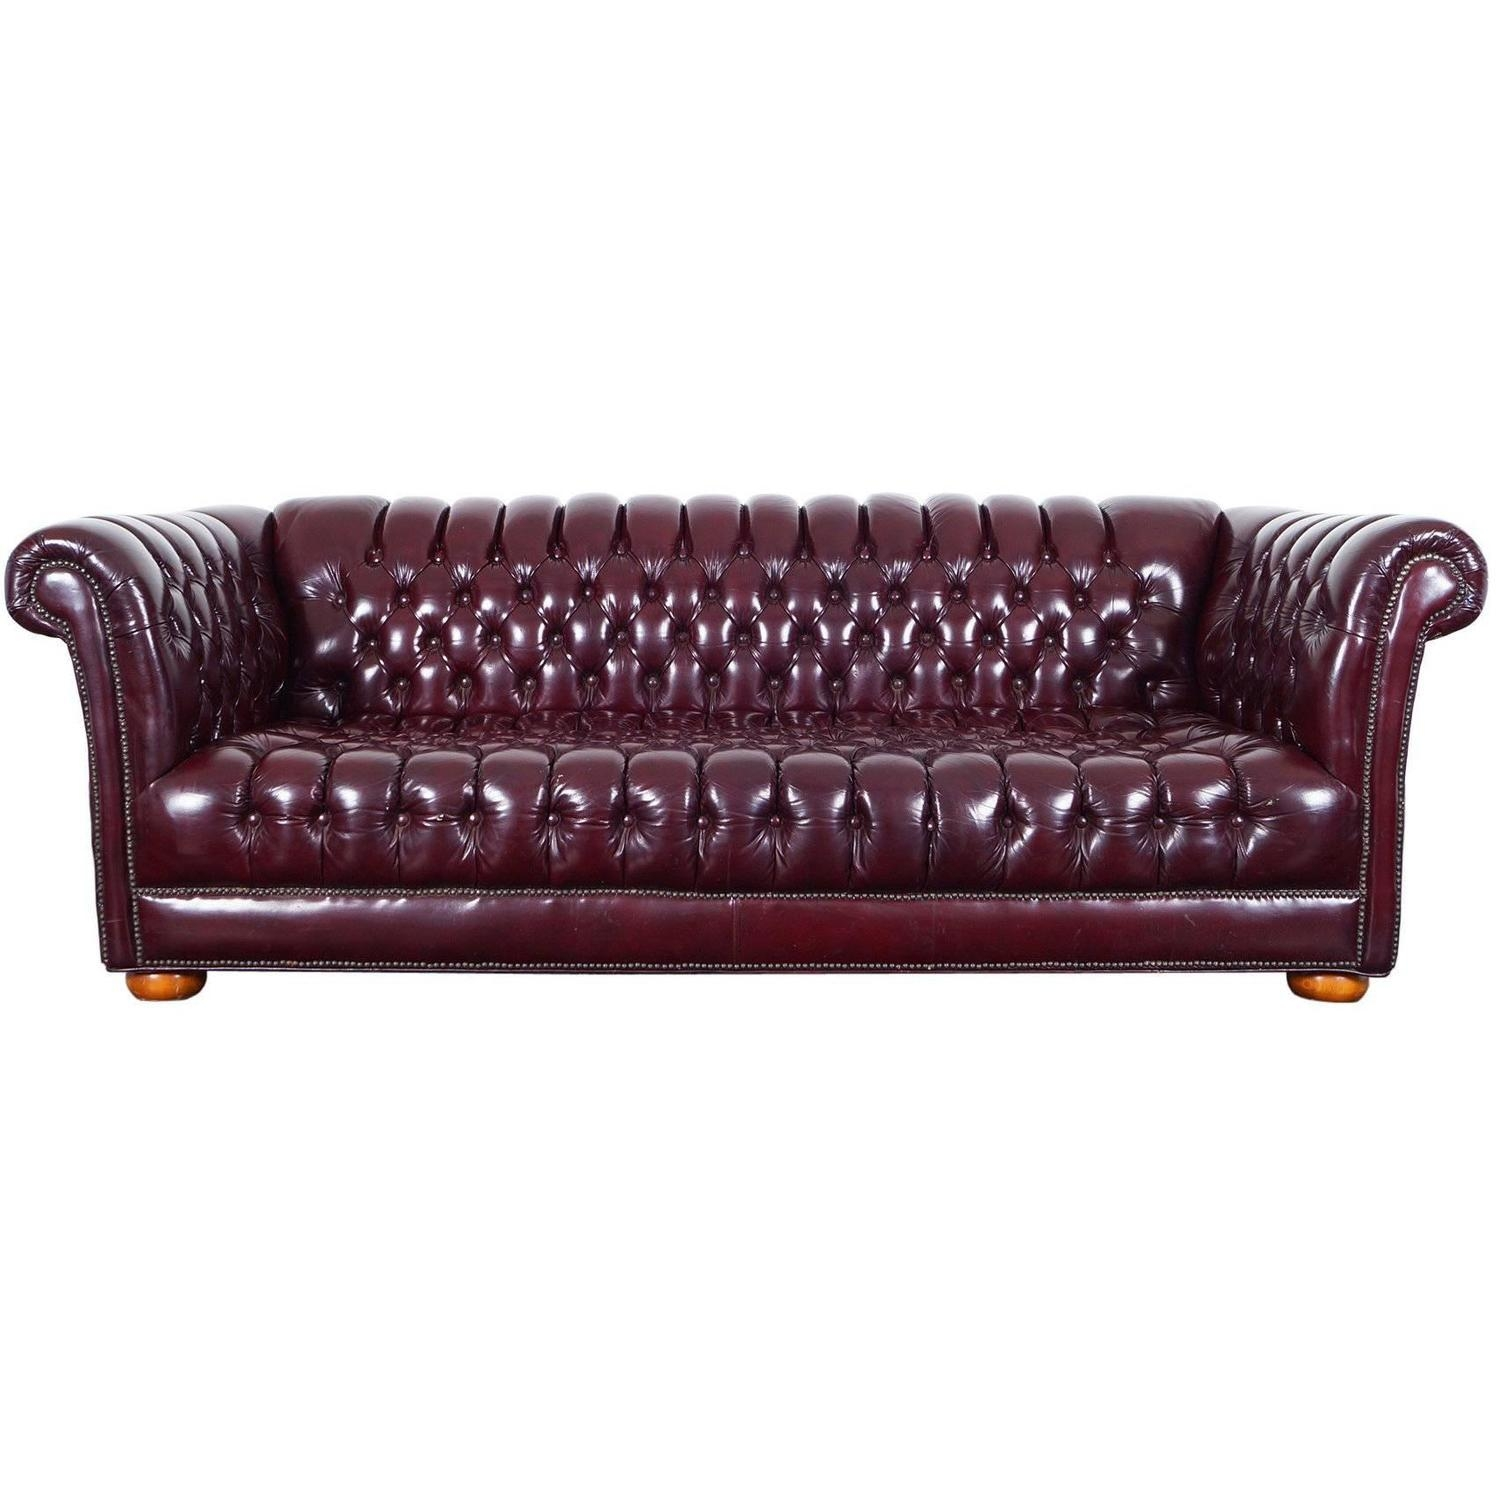 Chesterfield Sofa 20 Collection Of Vintage Chesterfield Sofas Sofa Ideas